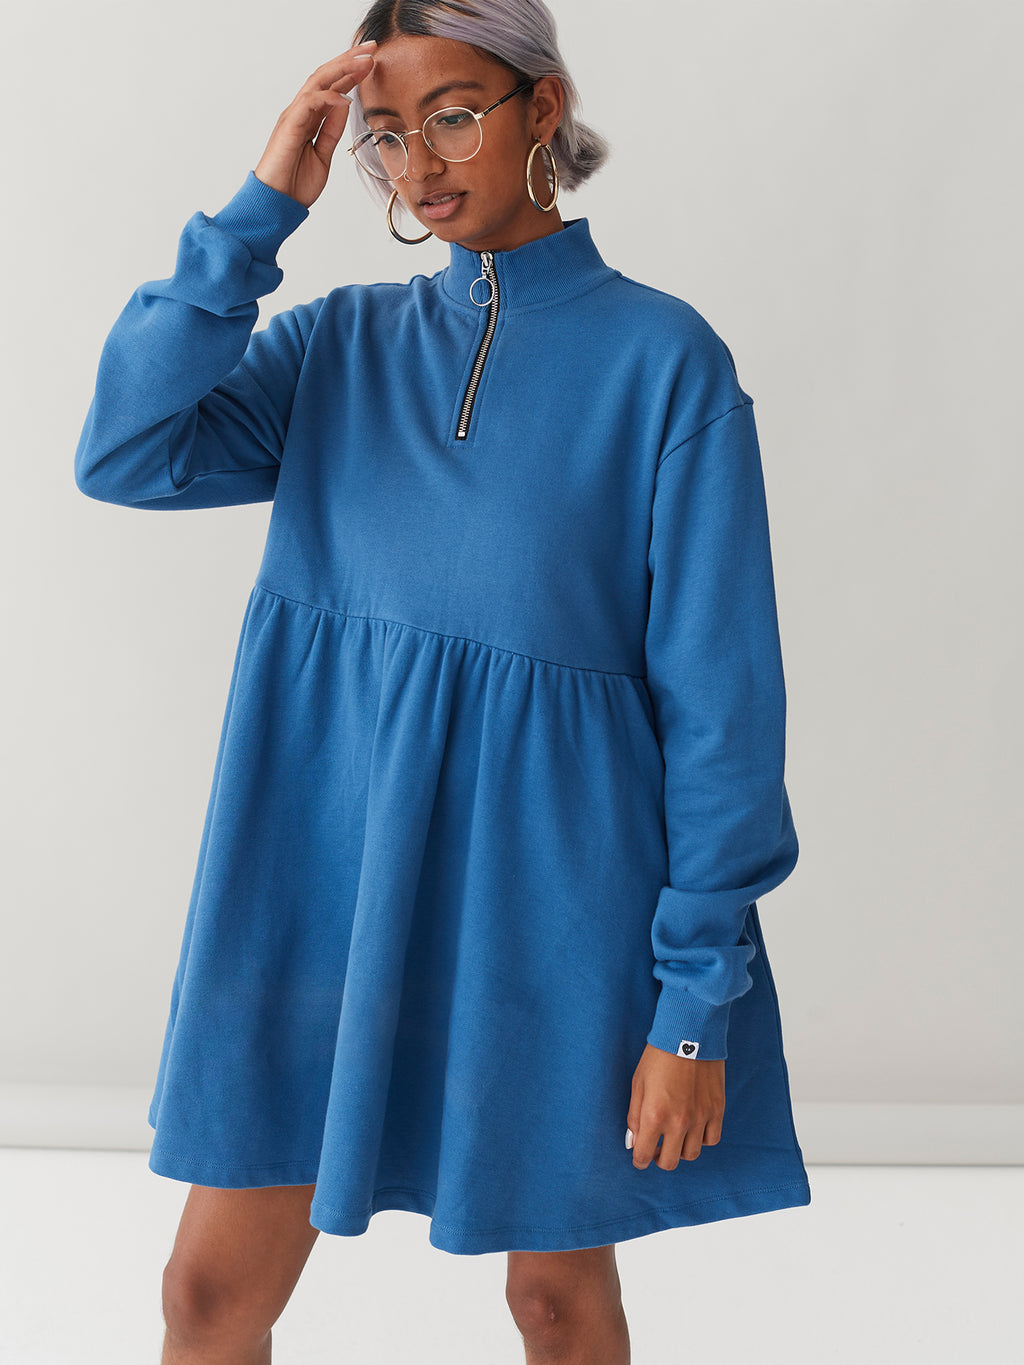 LO Blue Sally Sweater Dress